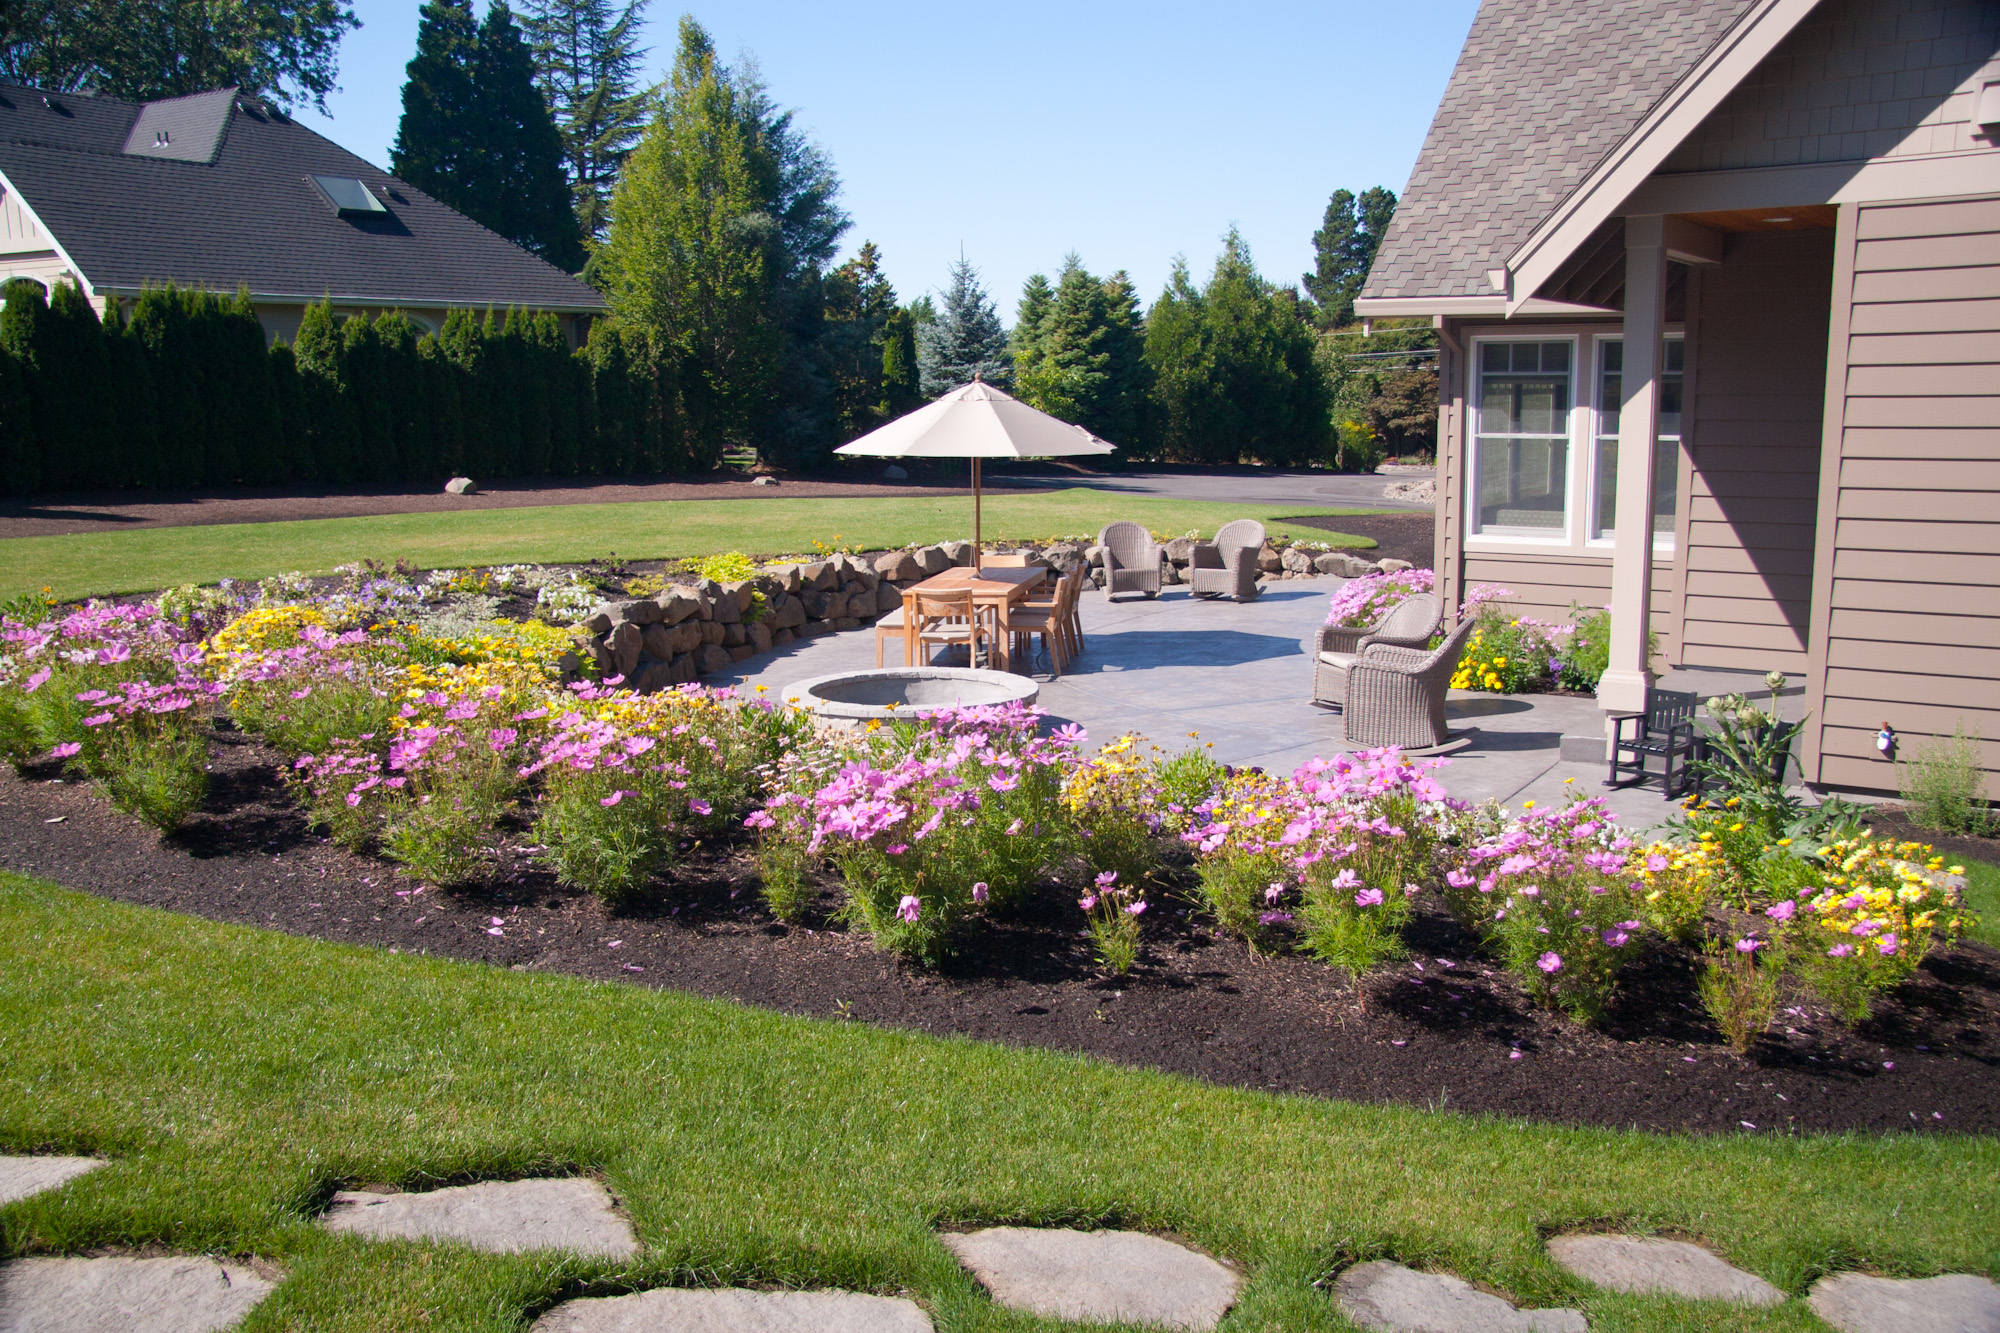 Landcsape design before and after pictures portland oregon for Landscape design perennial garden